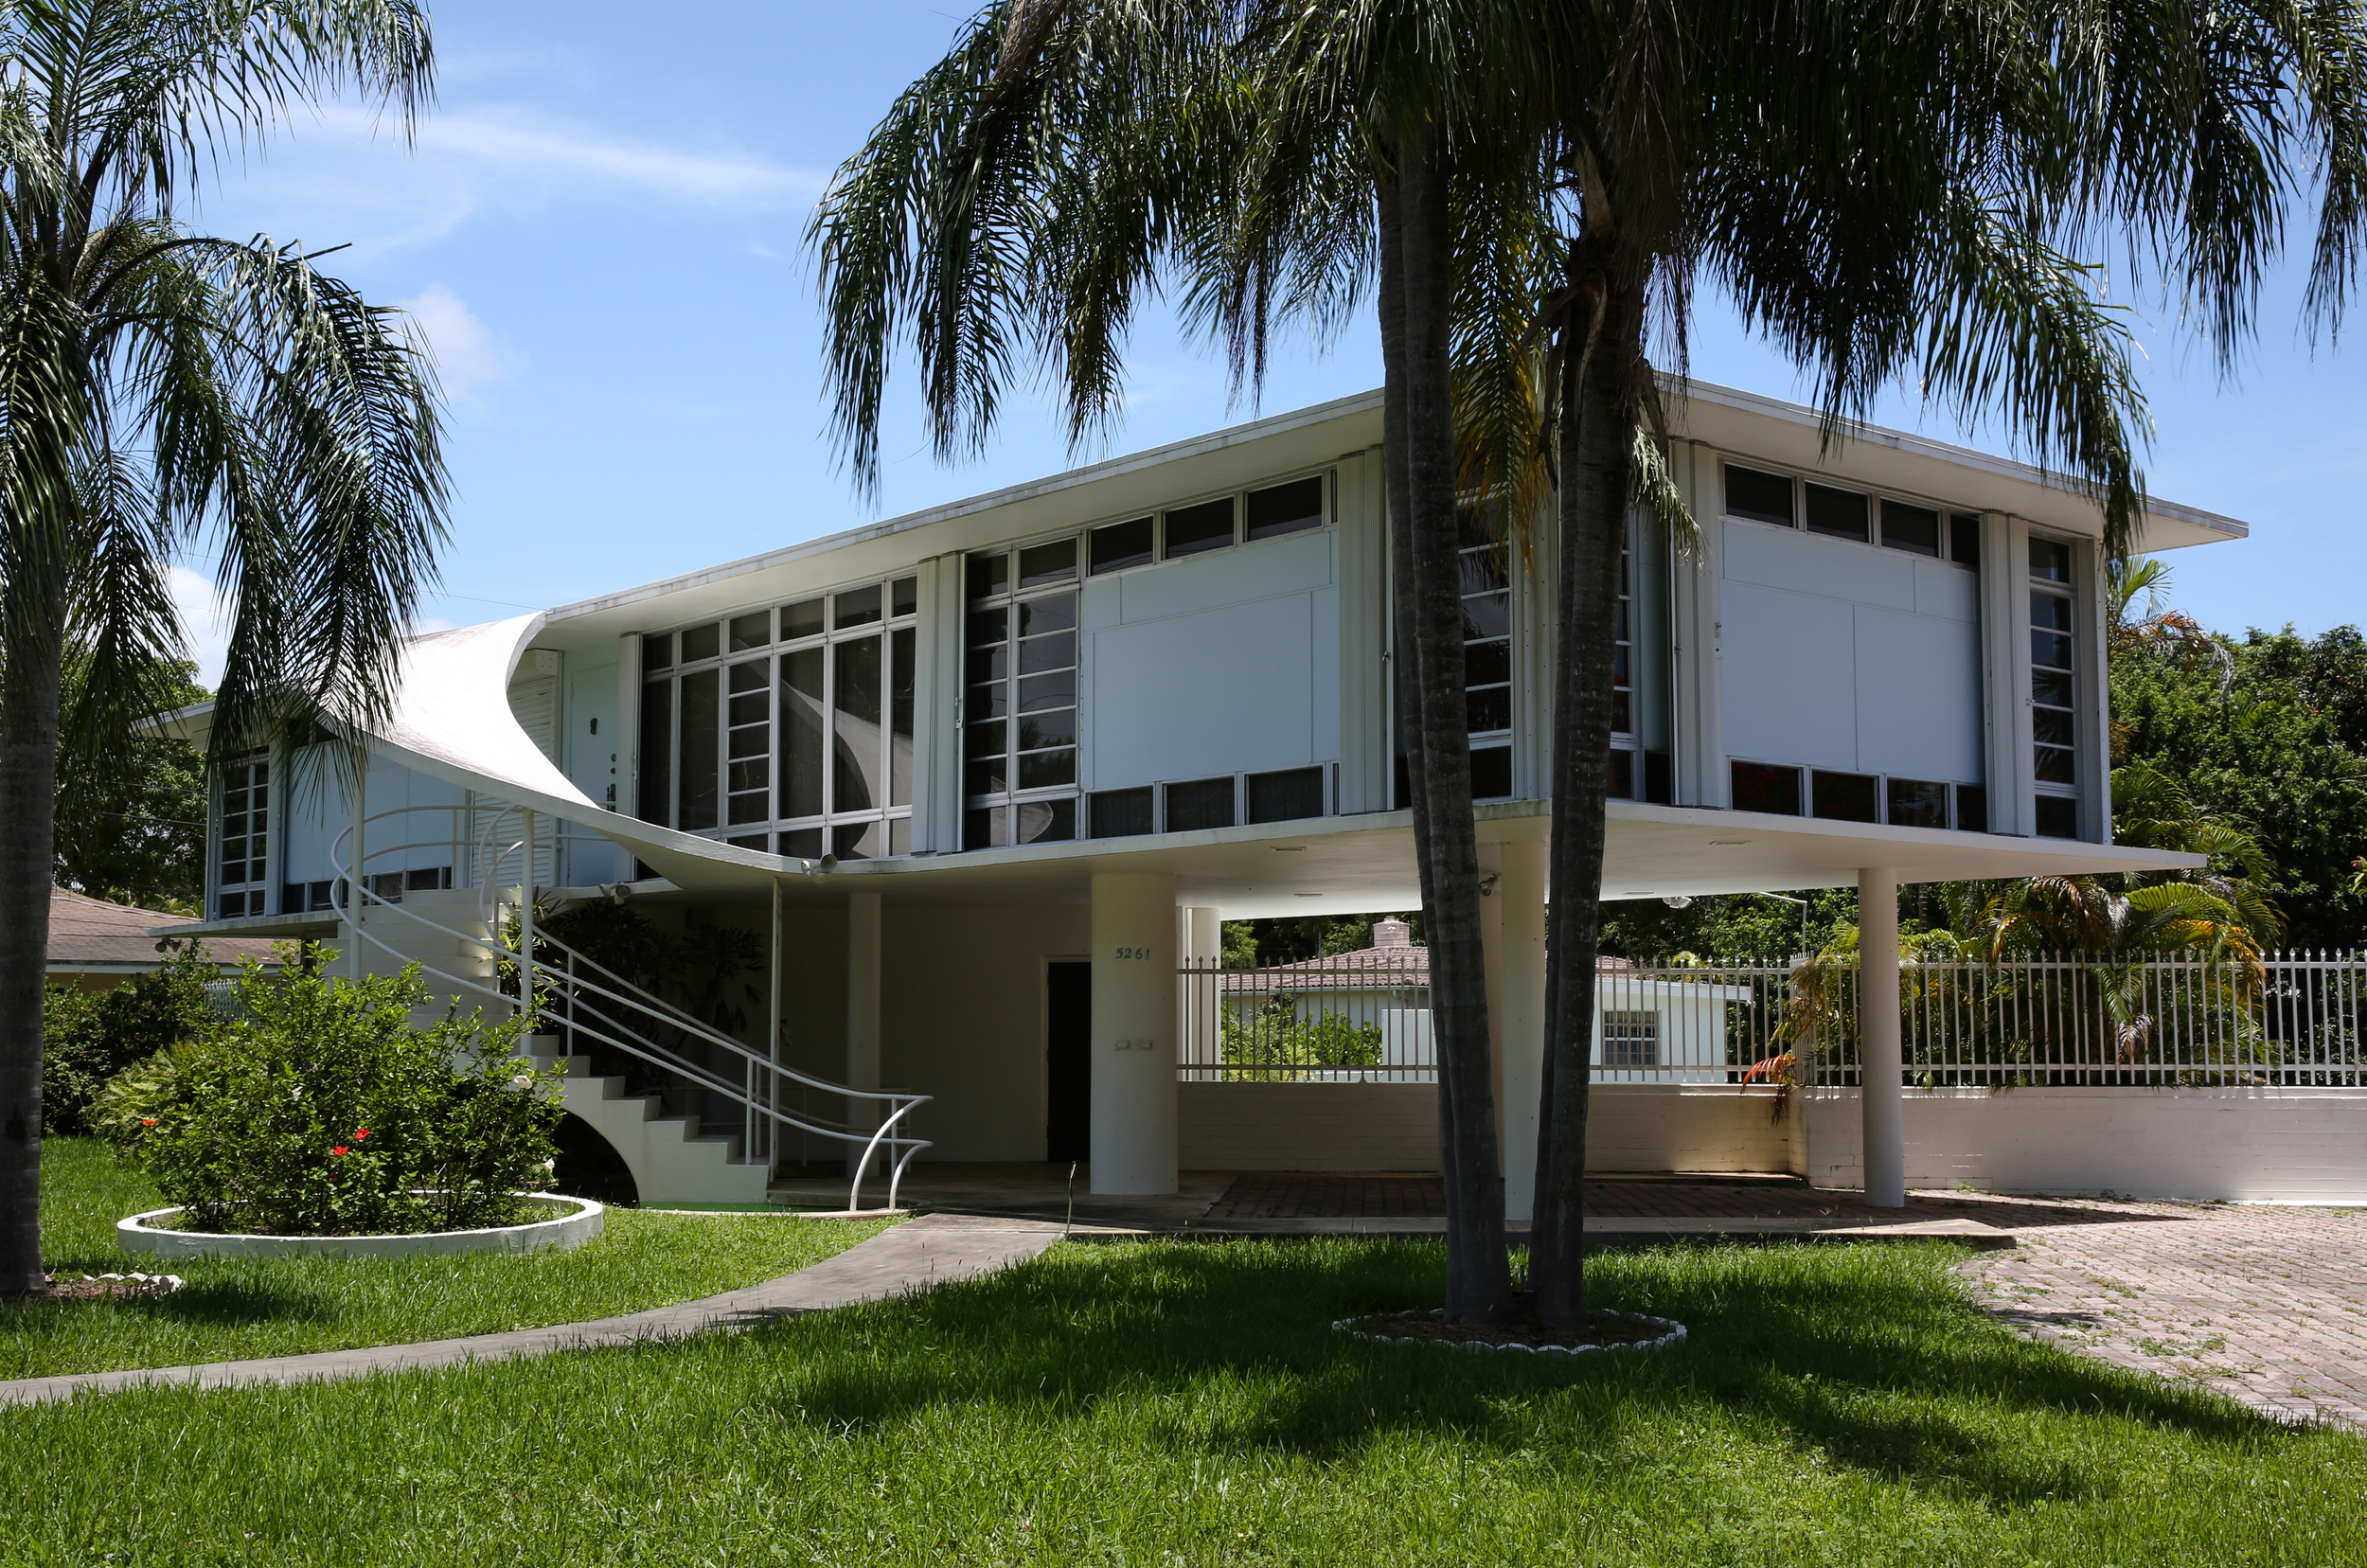 Morningside neighborhood, Miami. Architect: Rufus Nims